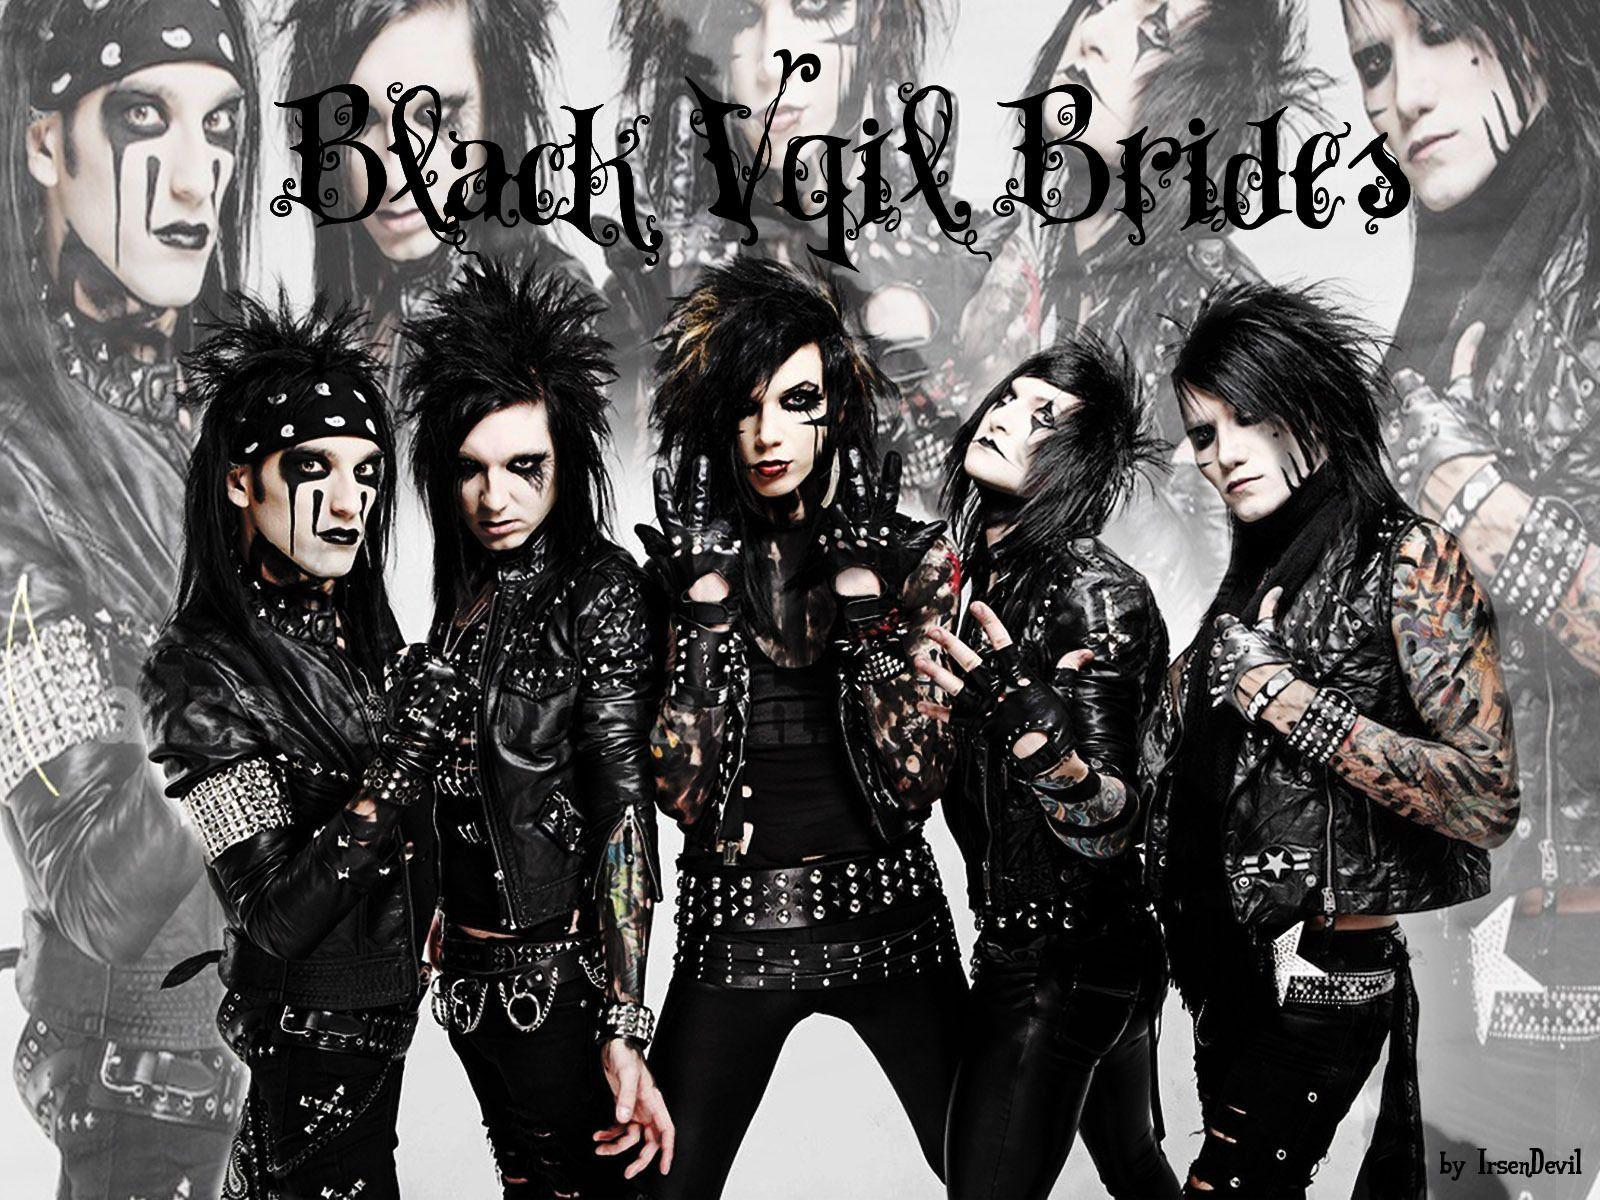 photo: Or Remove Black Veil Brides